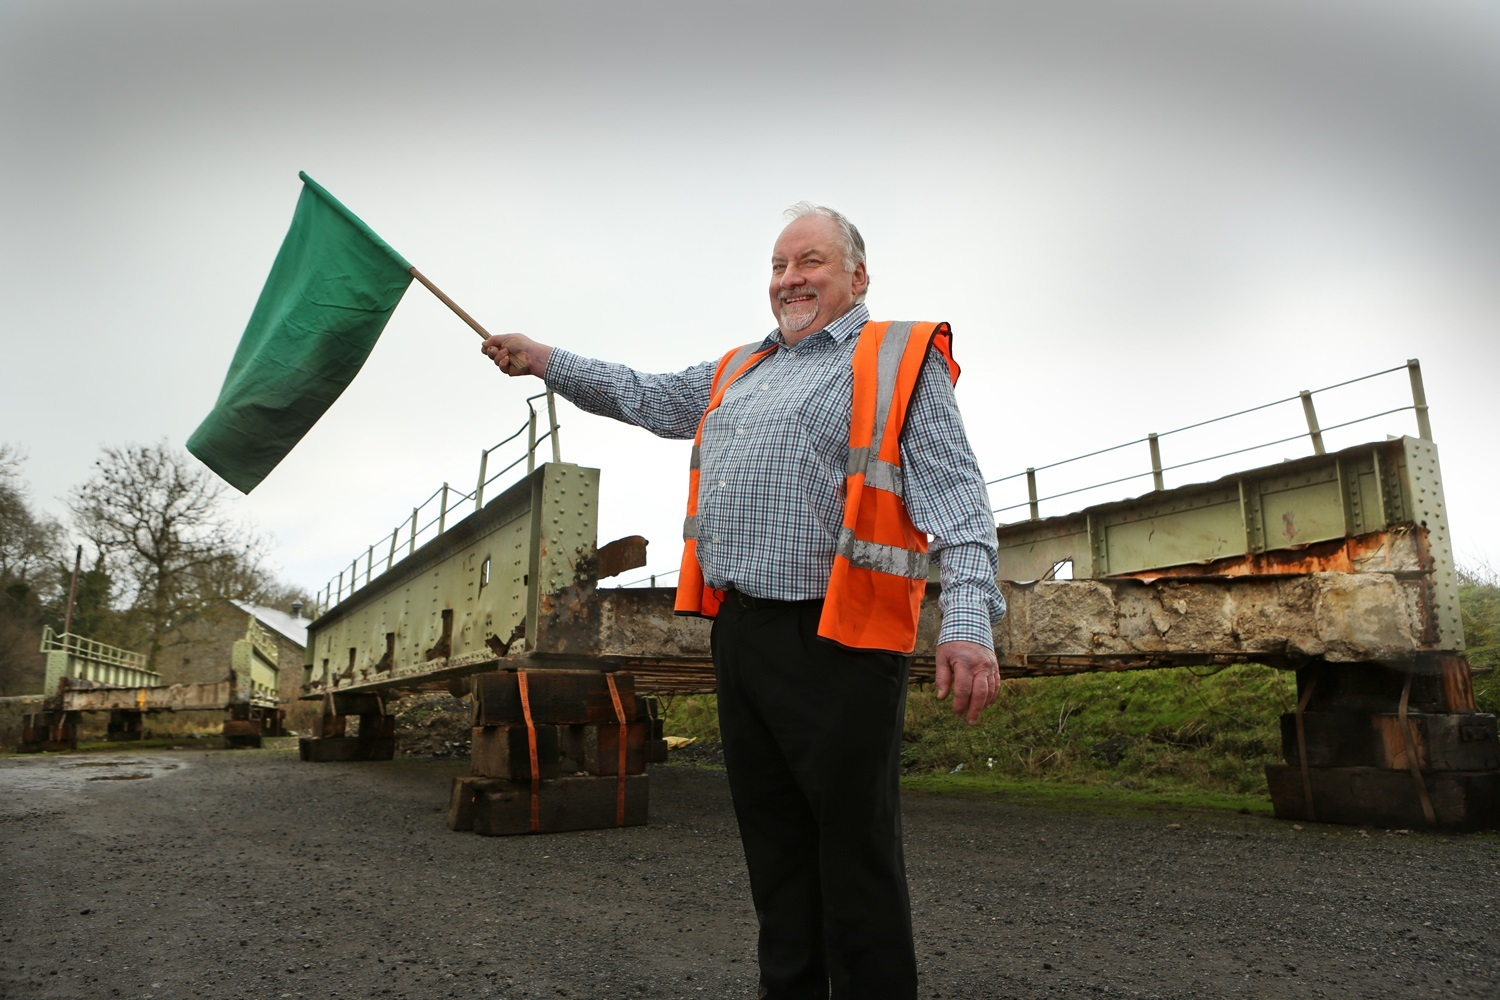 Nigel Park, general manager at Wensleydale Railway, with the secondhand bridge which used to cross the A1 near Catterick. It will now form a new crossing for the heritage railway at Redmire